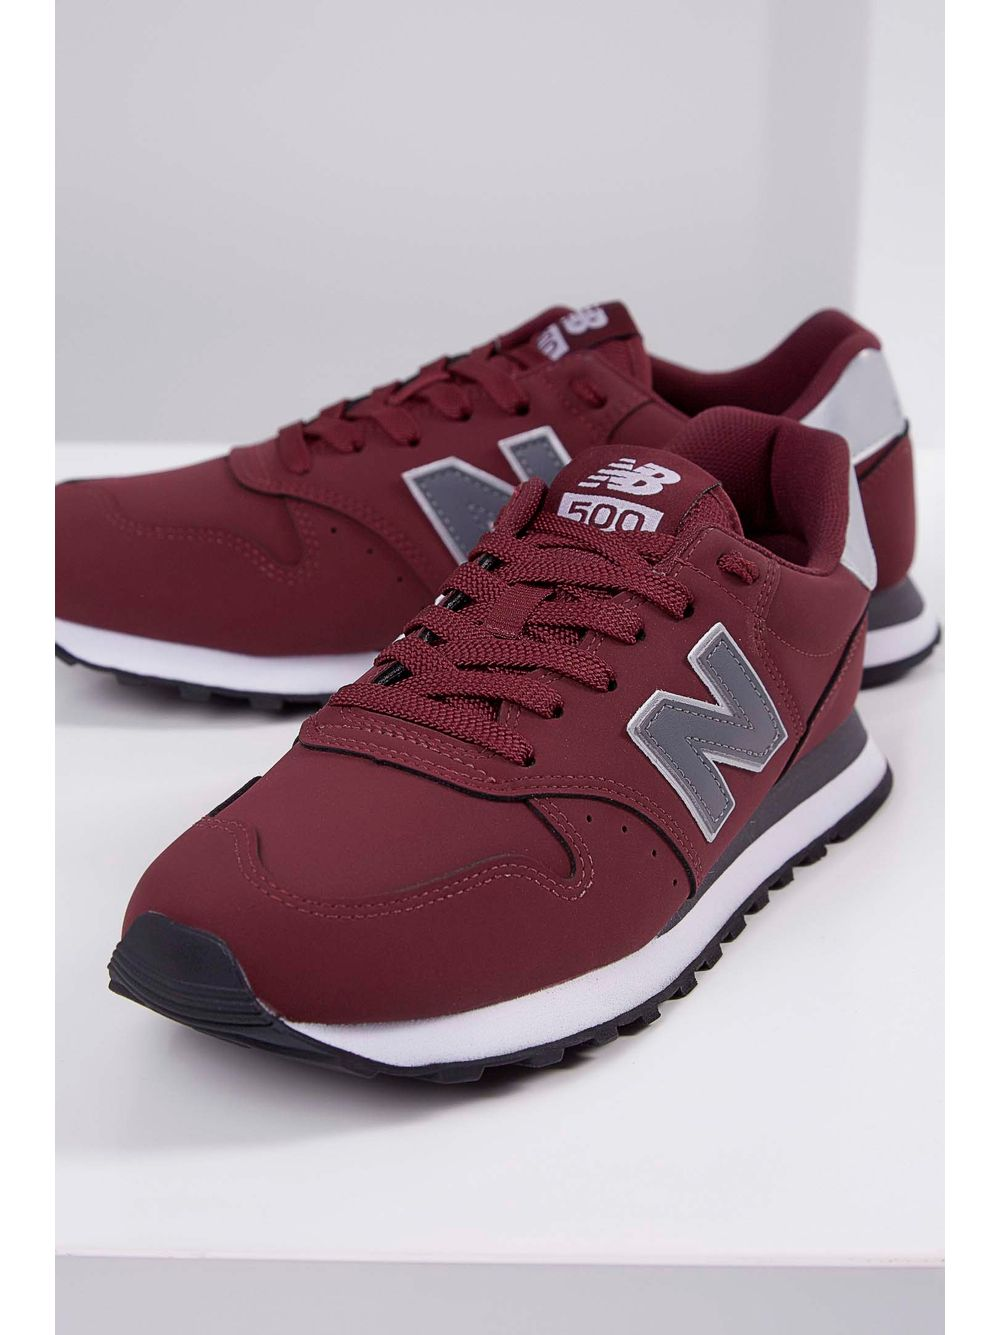 74f8c18f10a Tênis Casual New Balance Gm500brg Bordo - pittol